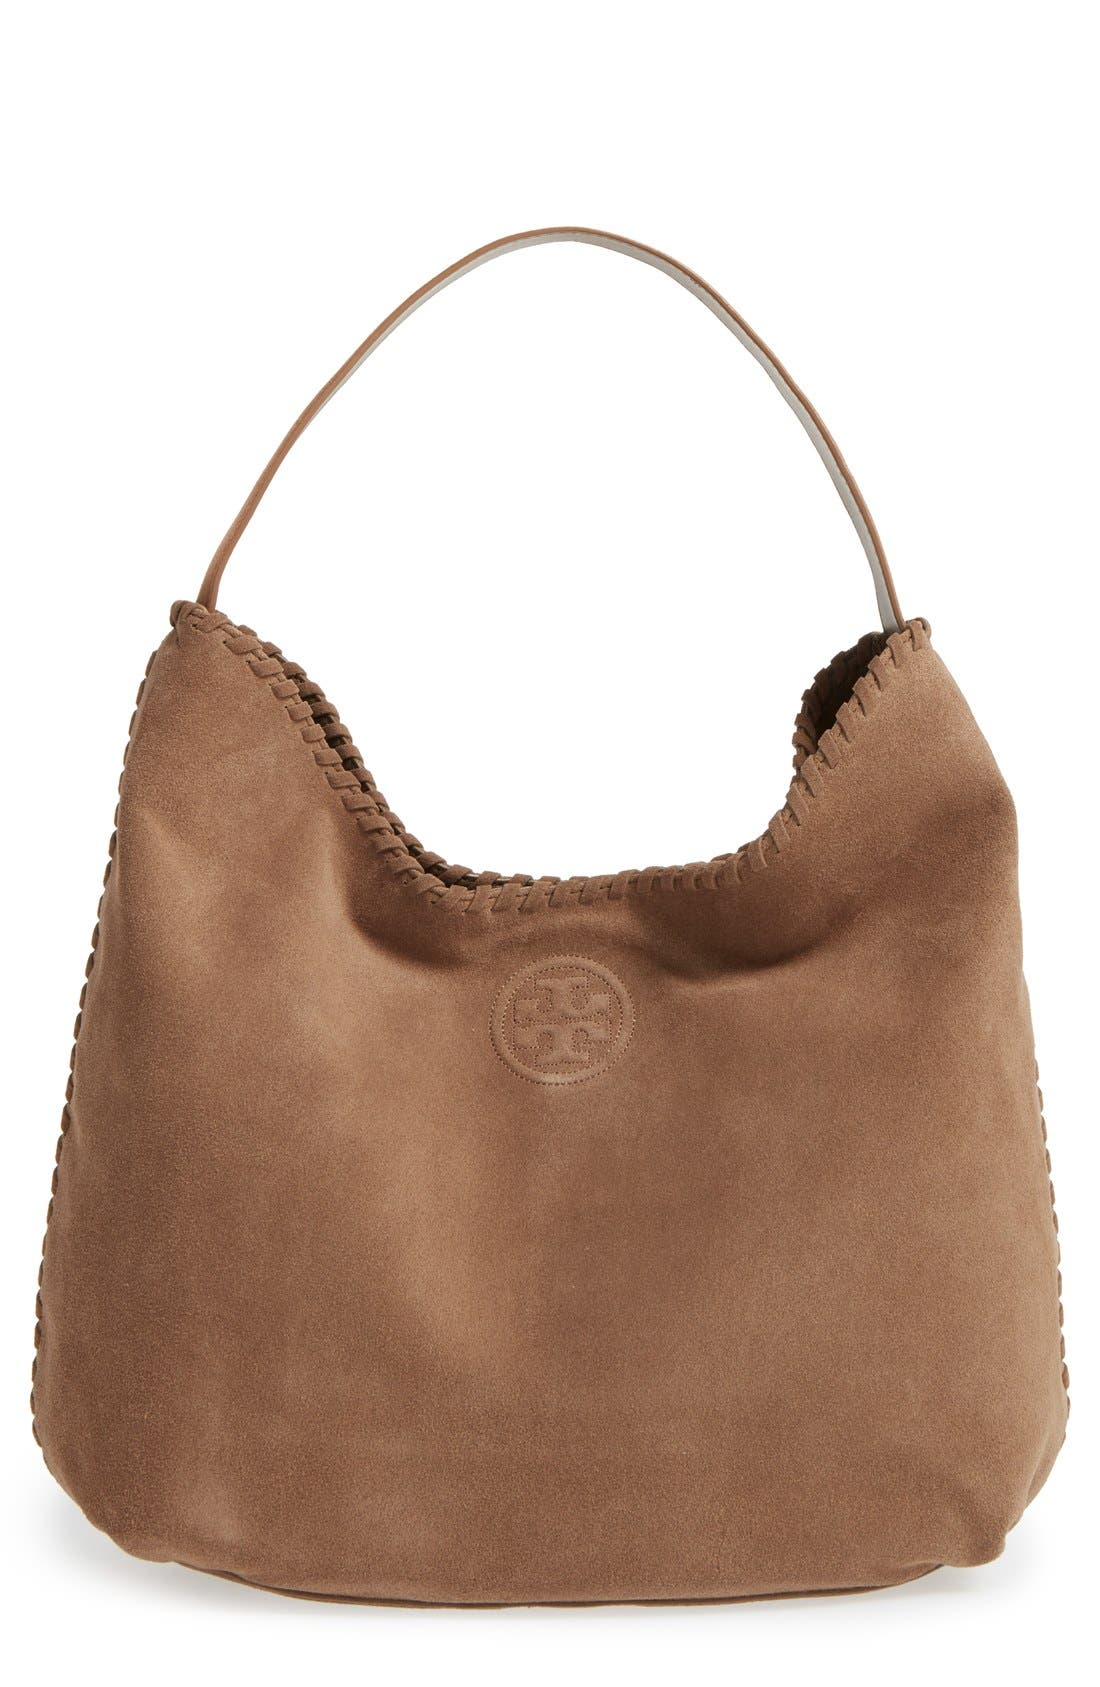 Main Image - Tory Burch 'Marion' Suede Hobo